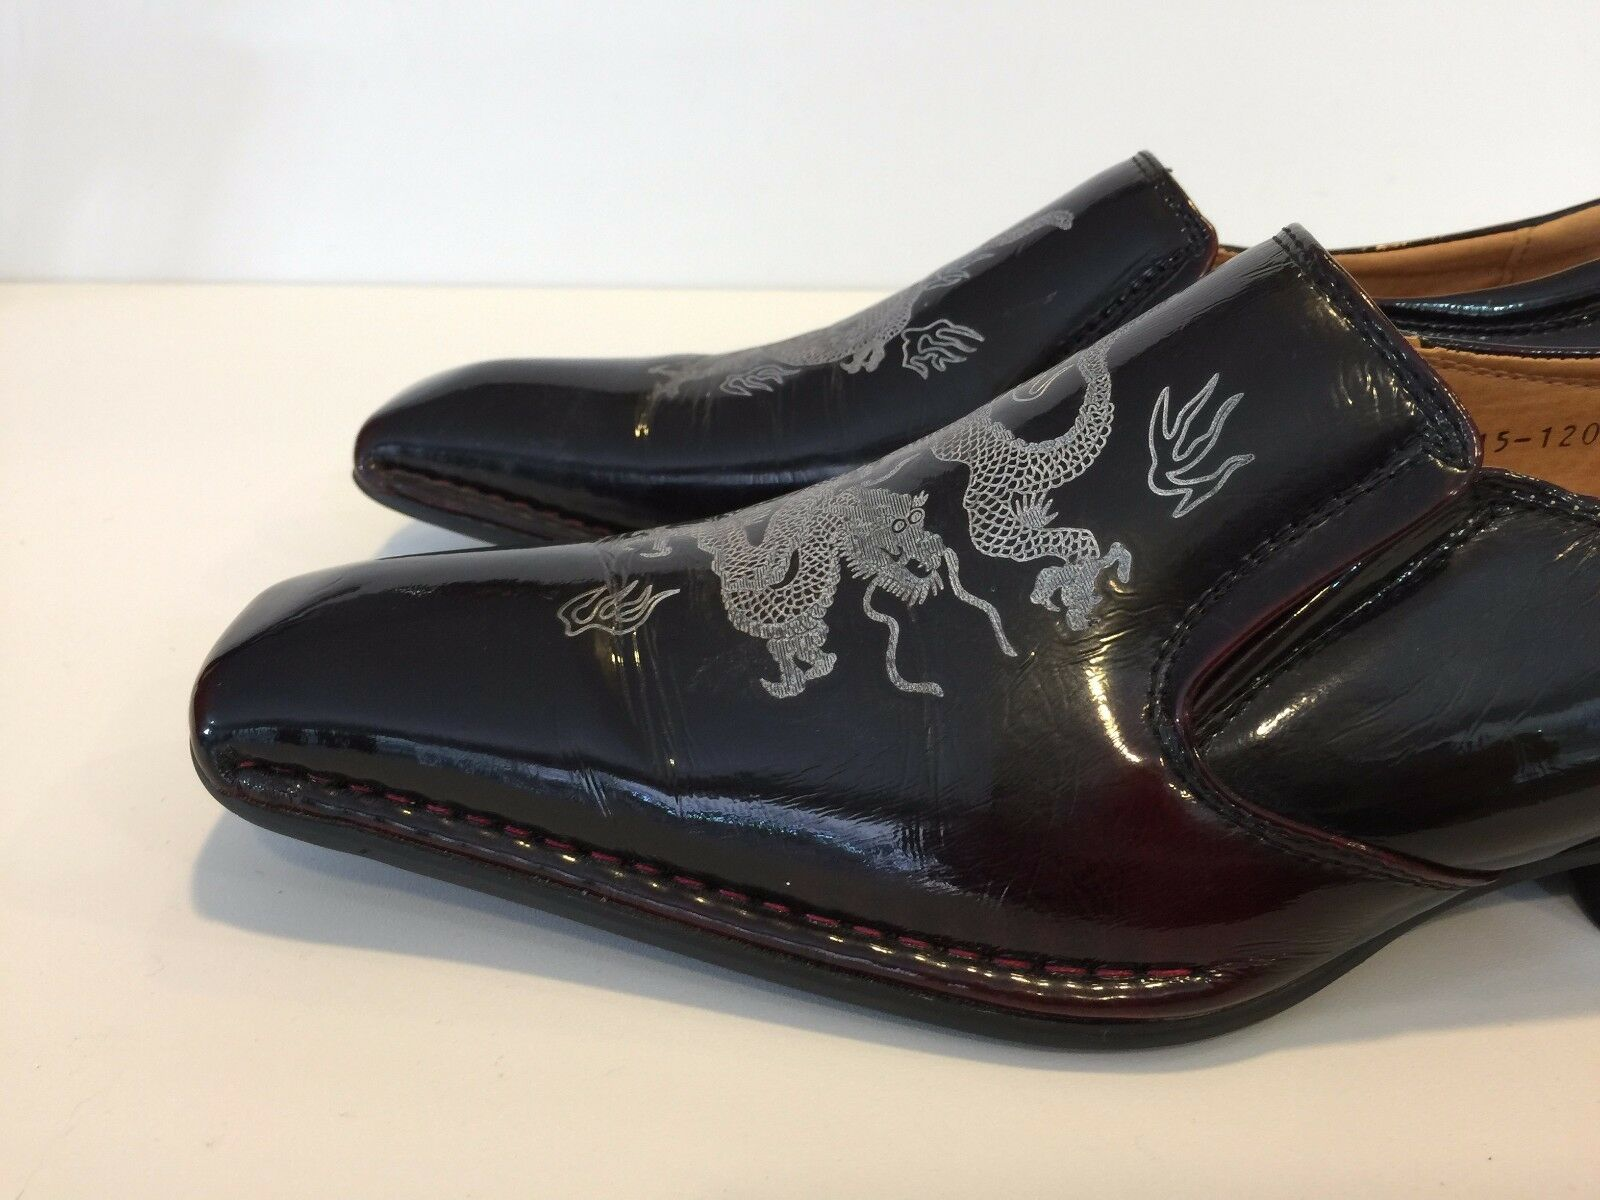 Ball-Bank Uomo Dark marrone & Burgundy Pelle w/Dragon w/Dragon w/Dragon Wedding Casual Scarpe ff1491